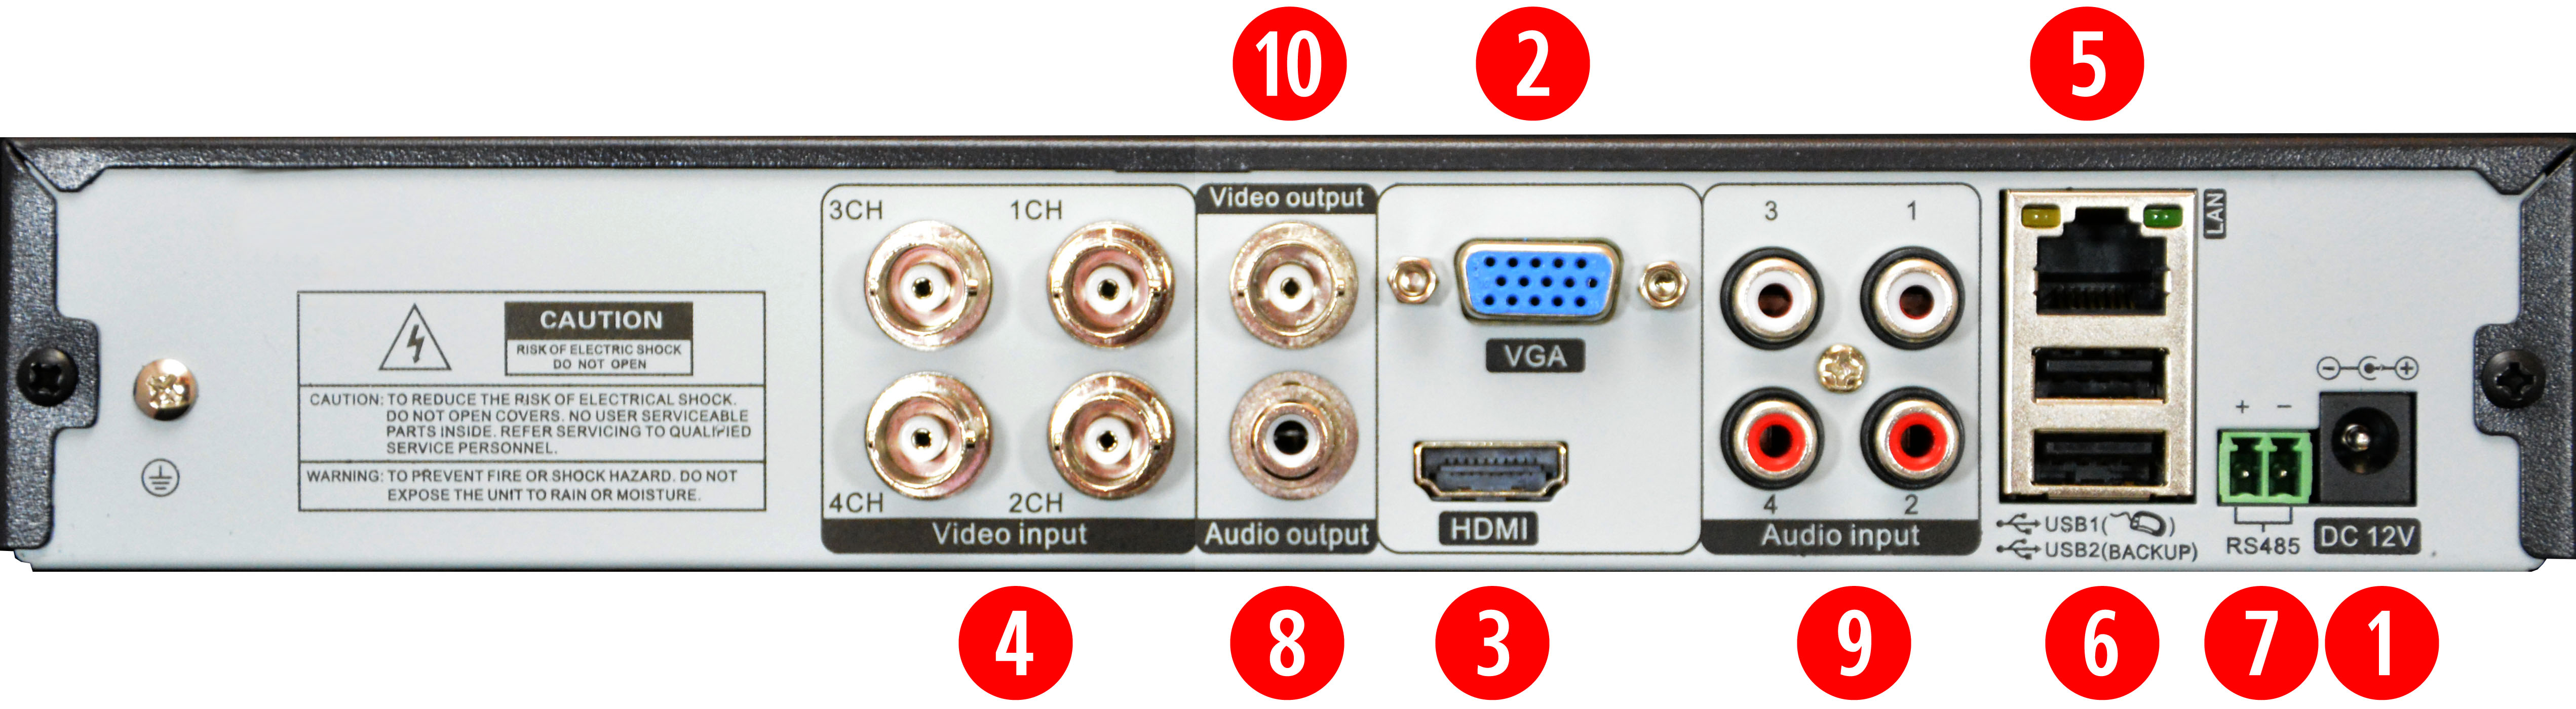 AHD digital video recorder for CCTV cameras, CCTV DVR/NVR AHD with ...